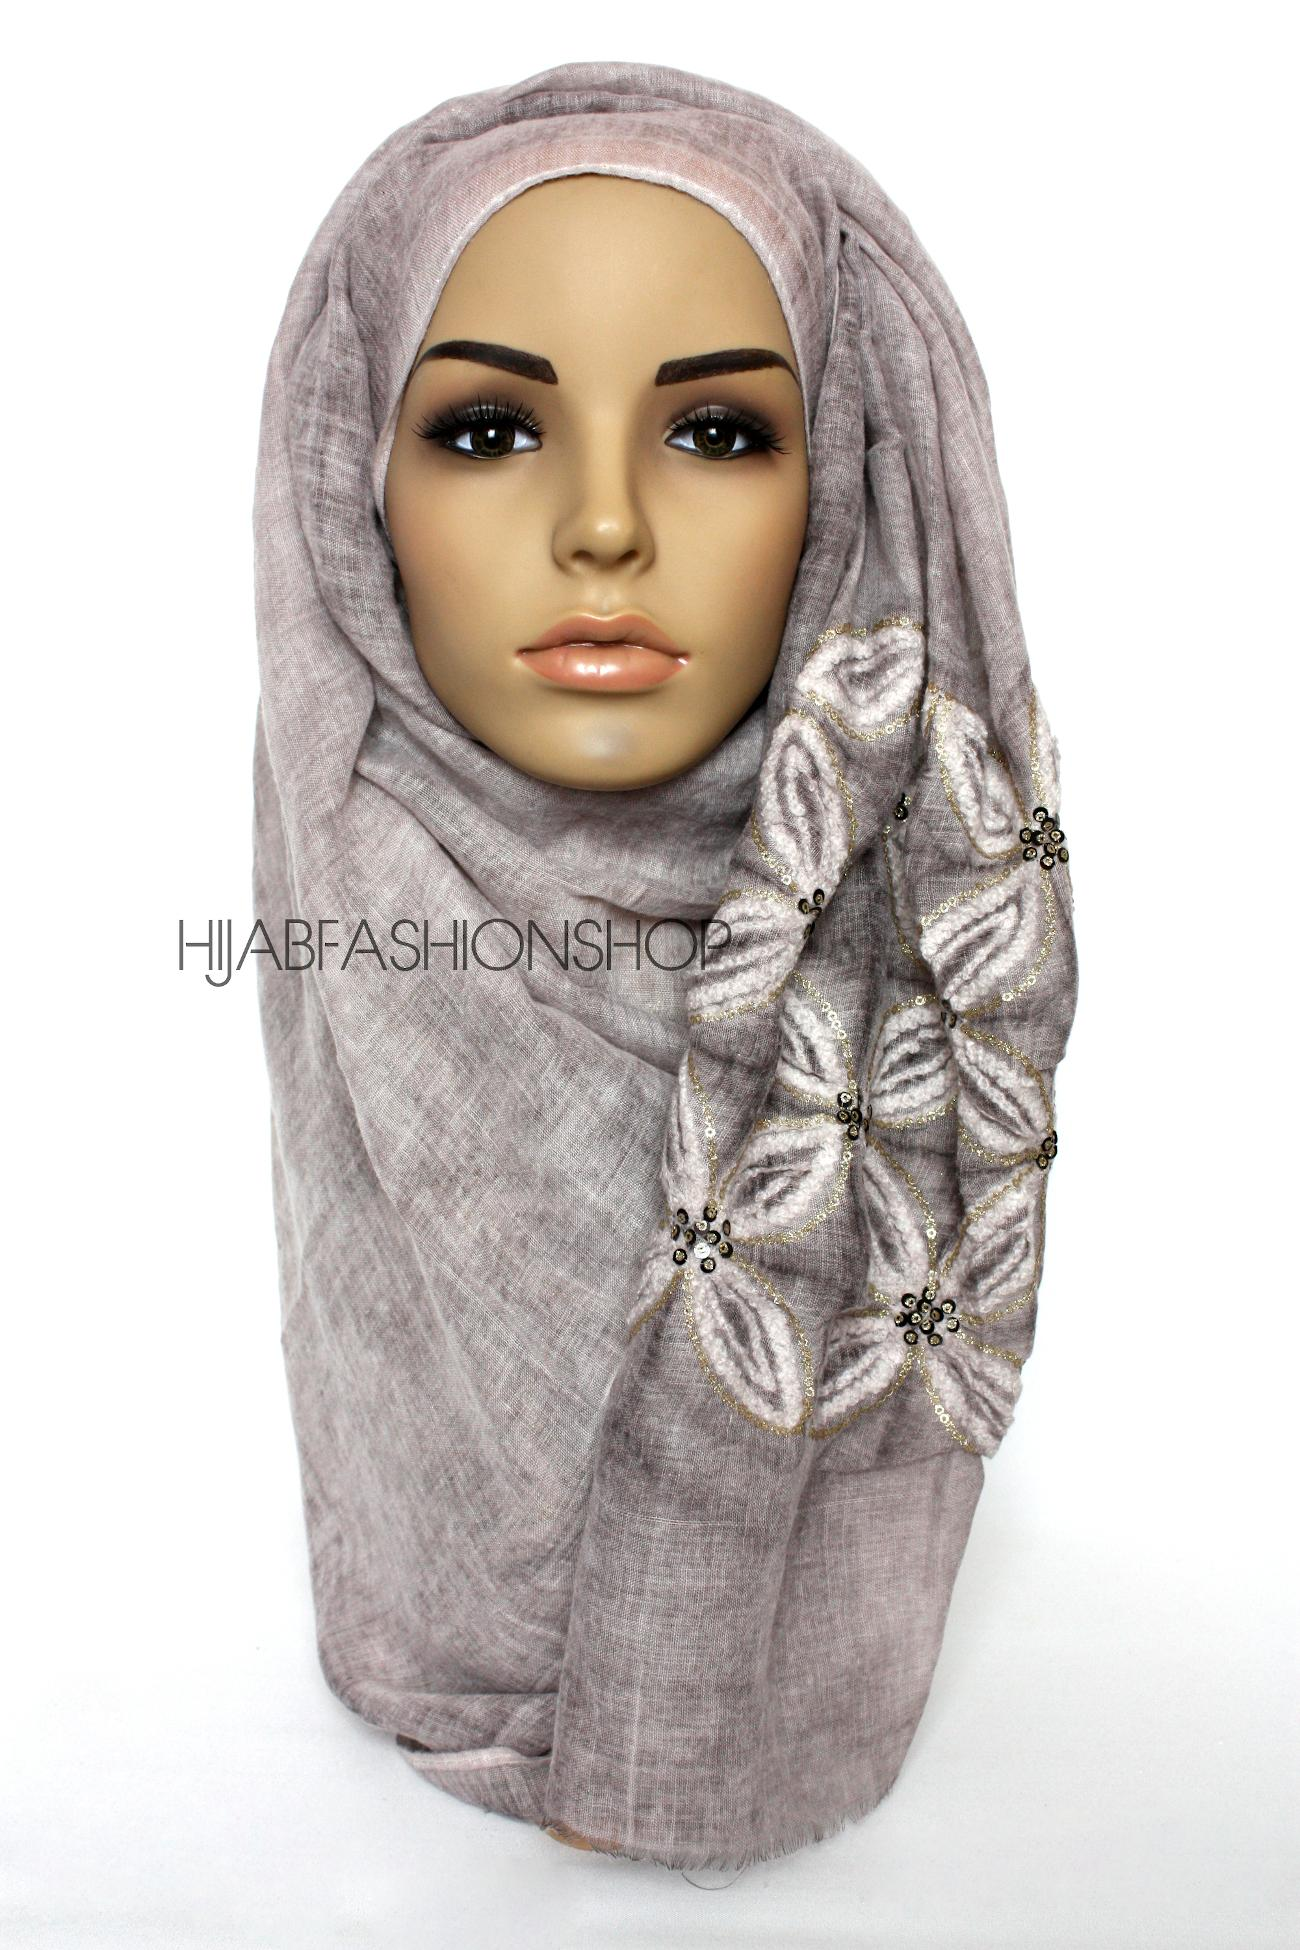 dusky mauve linen look hijab with lilies embroidery and sequins